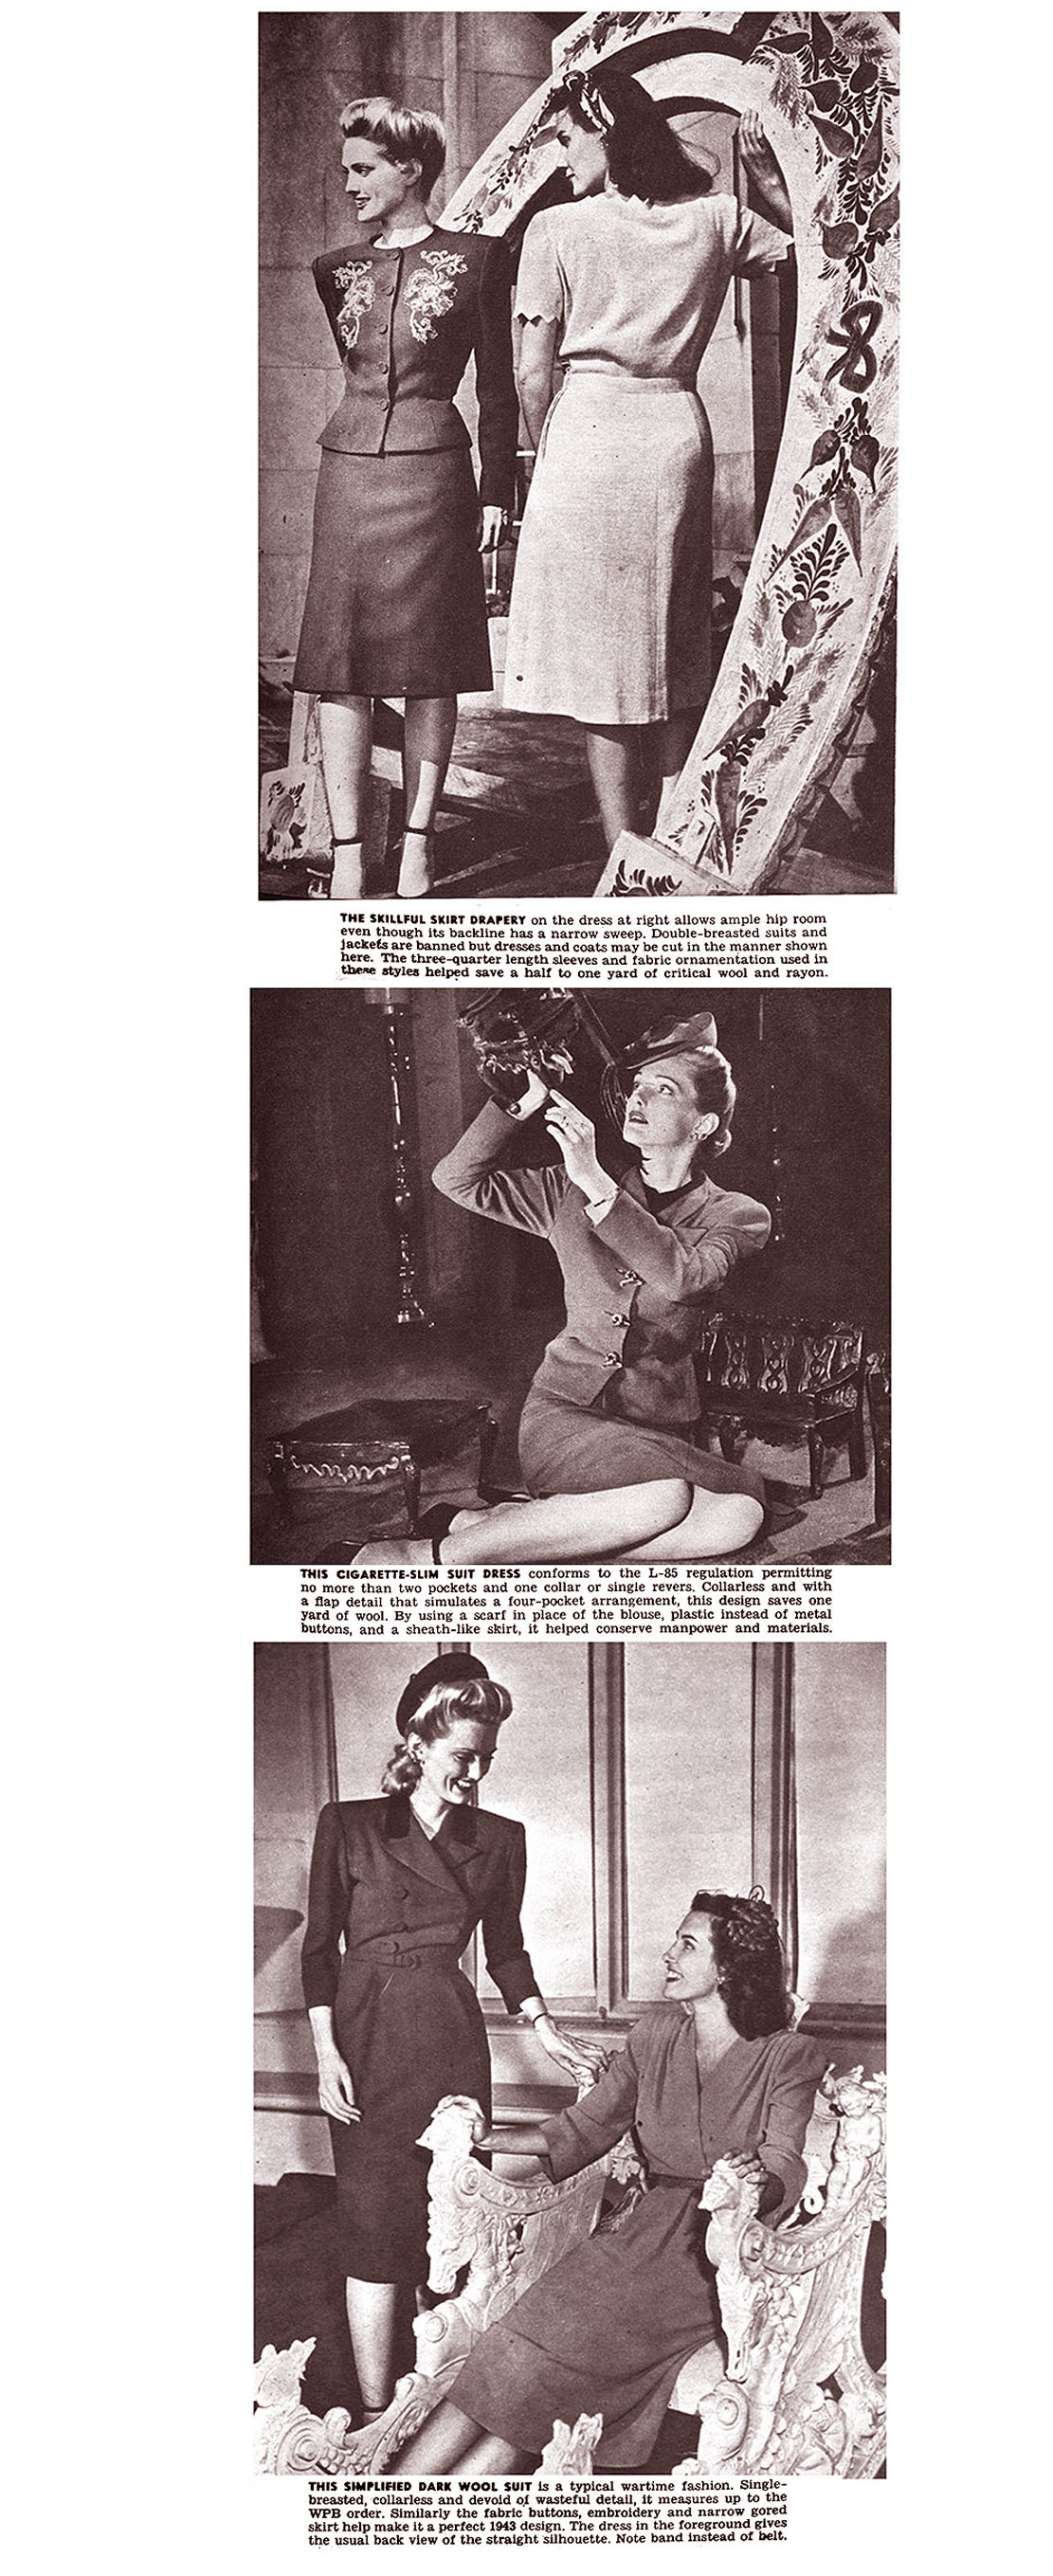 That Slim Wartime Silhouette (Click Magazine, 1943)